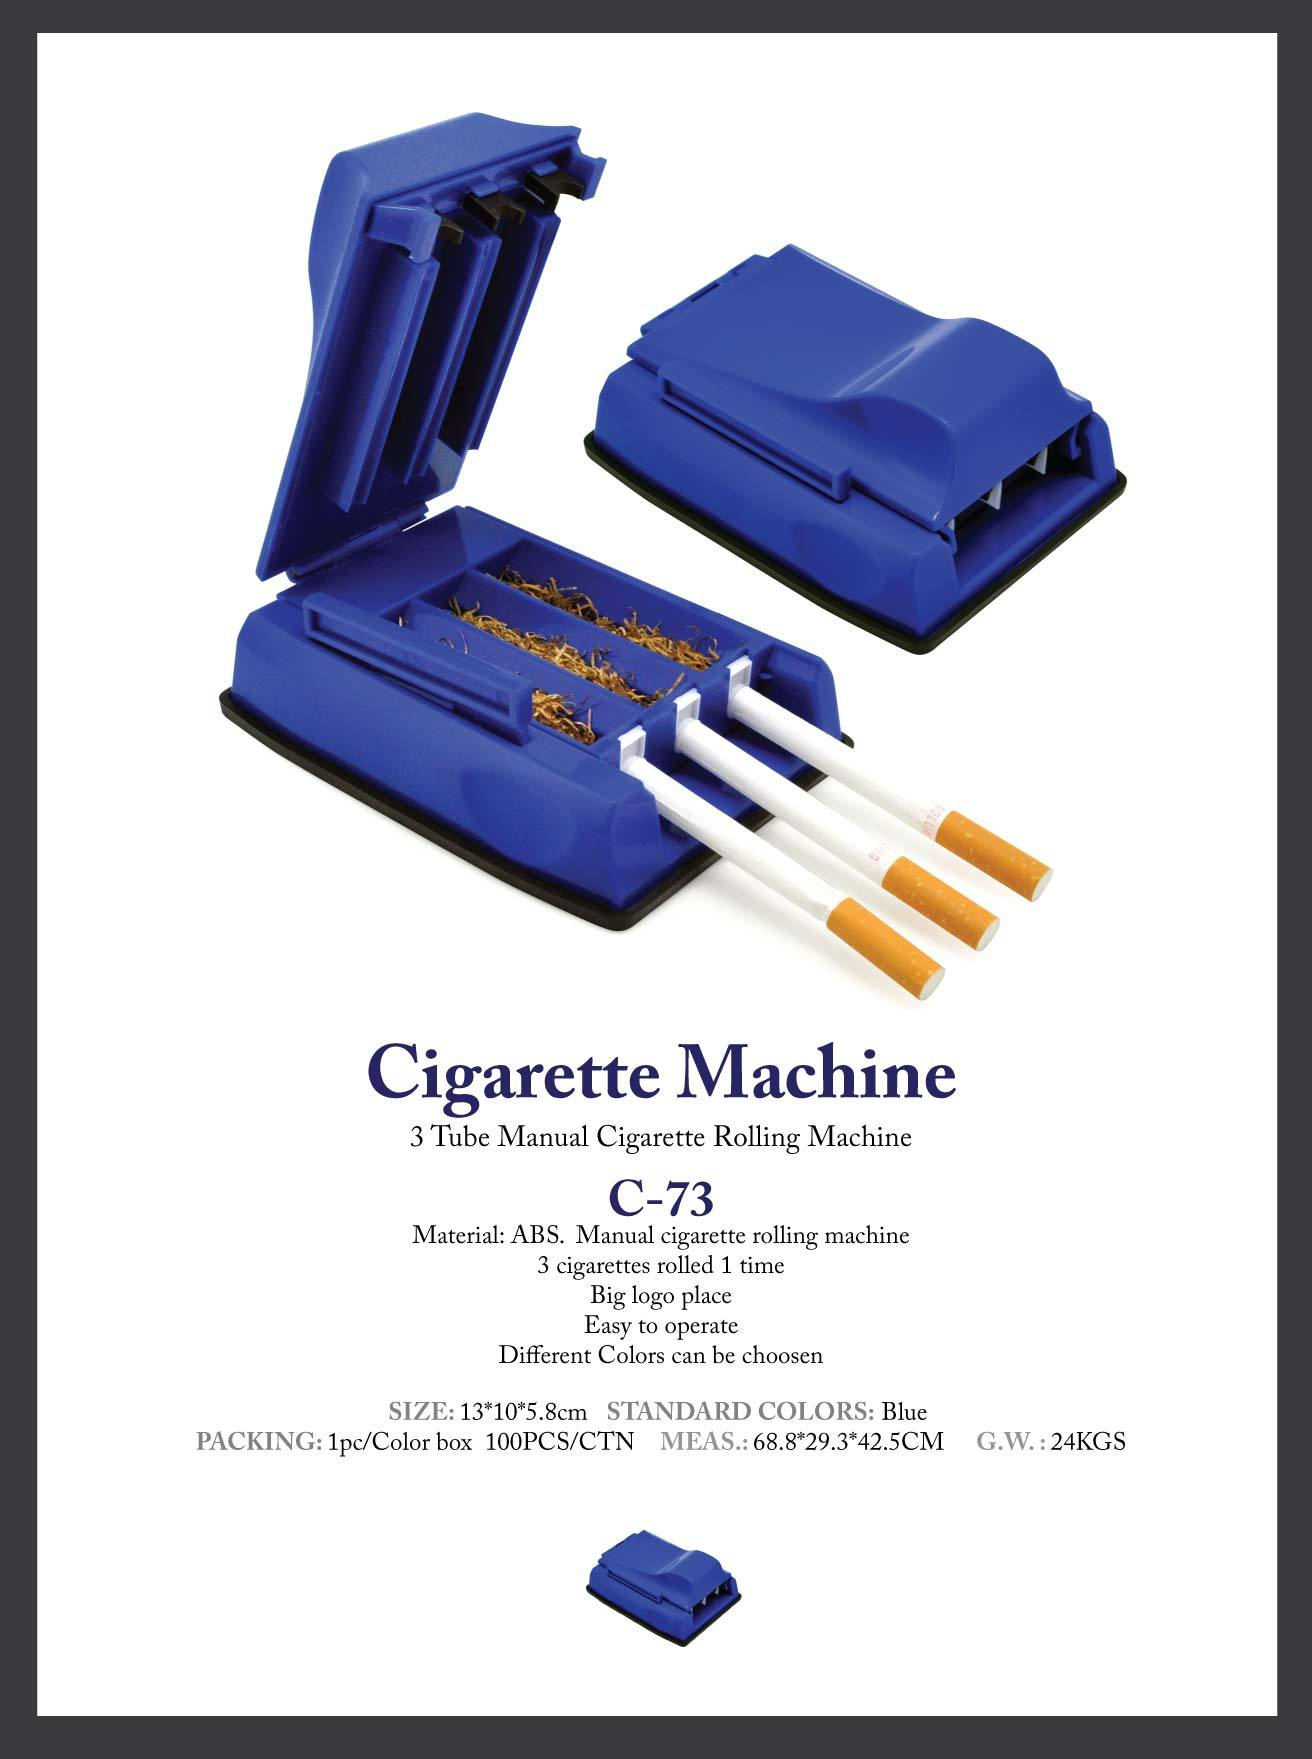 Cigarettes Marlboro USA made